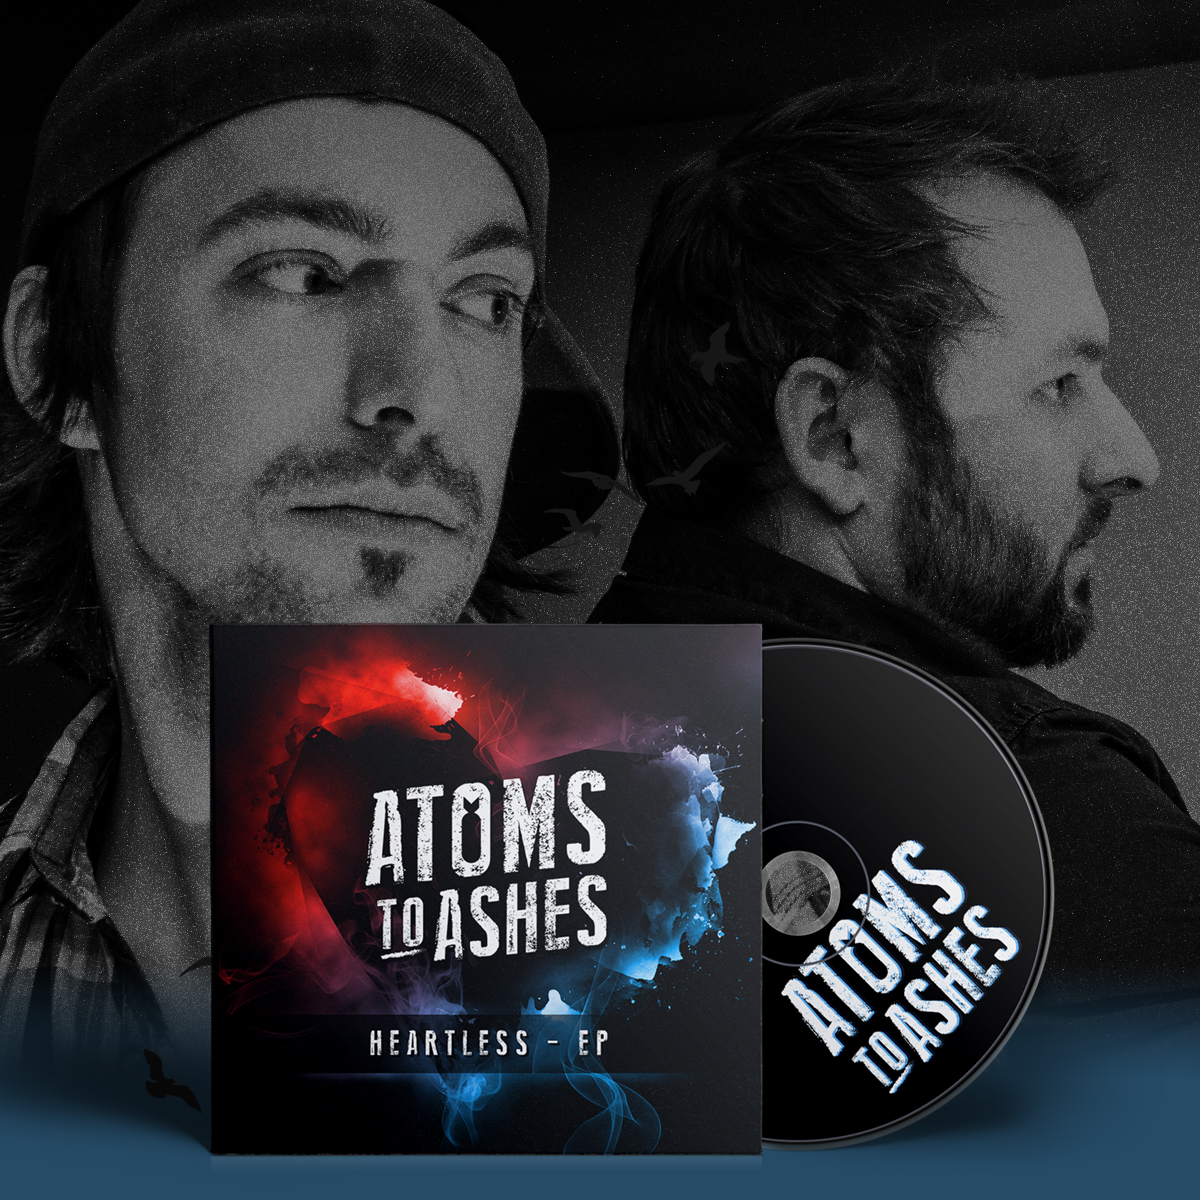 Heartless EP Atoms to ashes